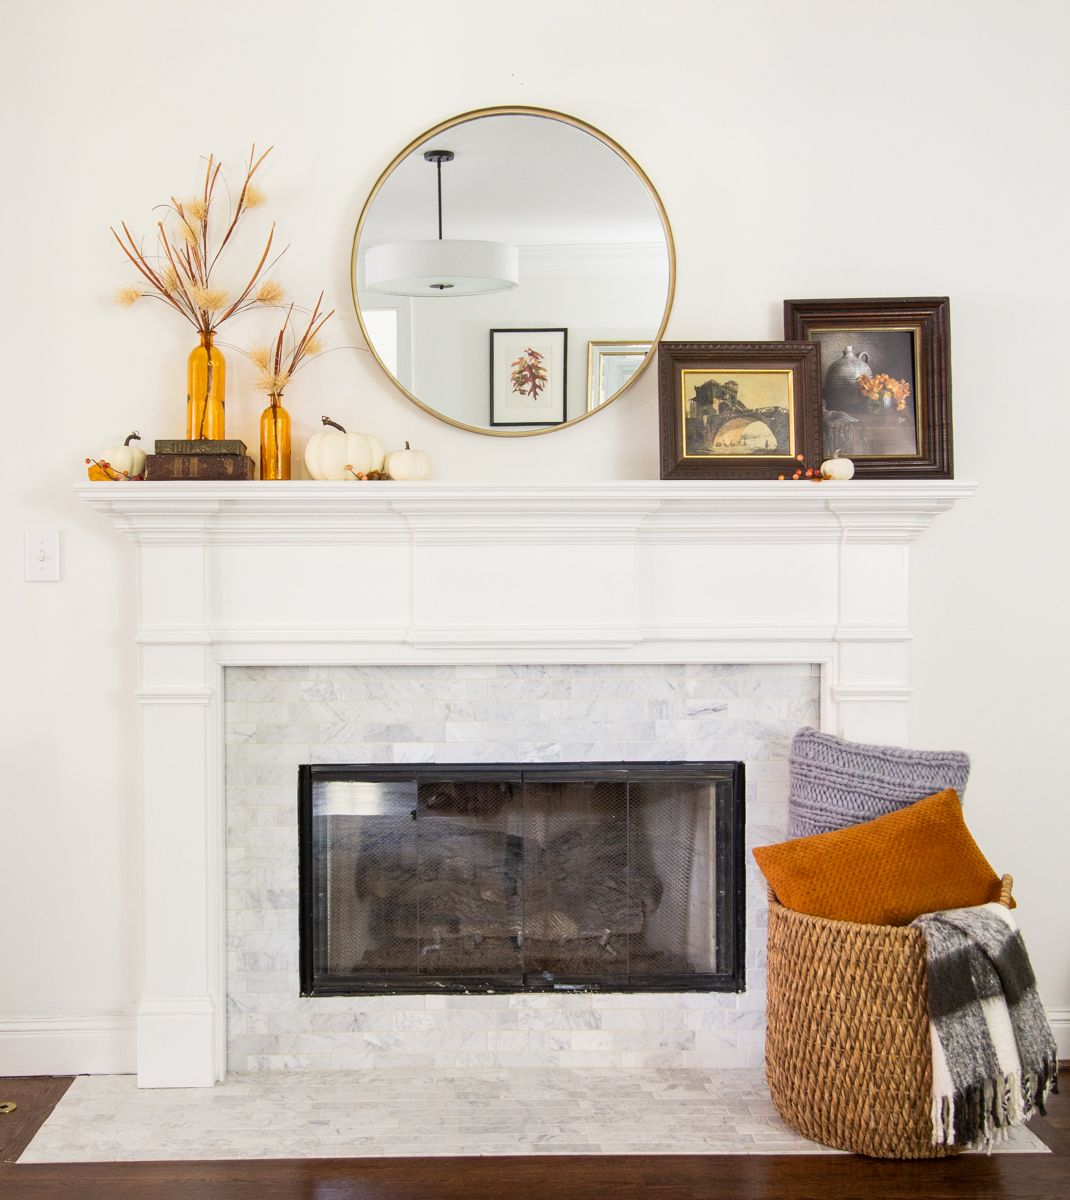 4 Ways To Style A Simple Fall Mantle With A Round Mirror Deeplysouthernhome In 2019 Mirror Over Fireplace Unique Home Decor Mantle